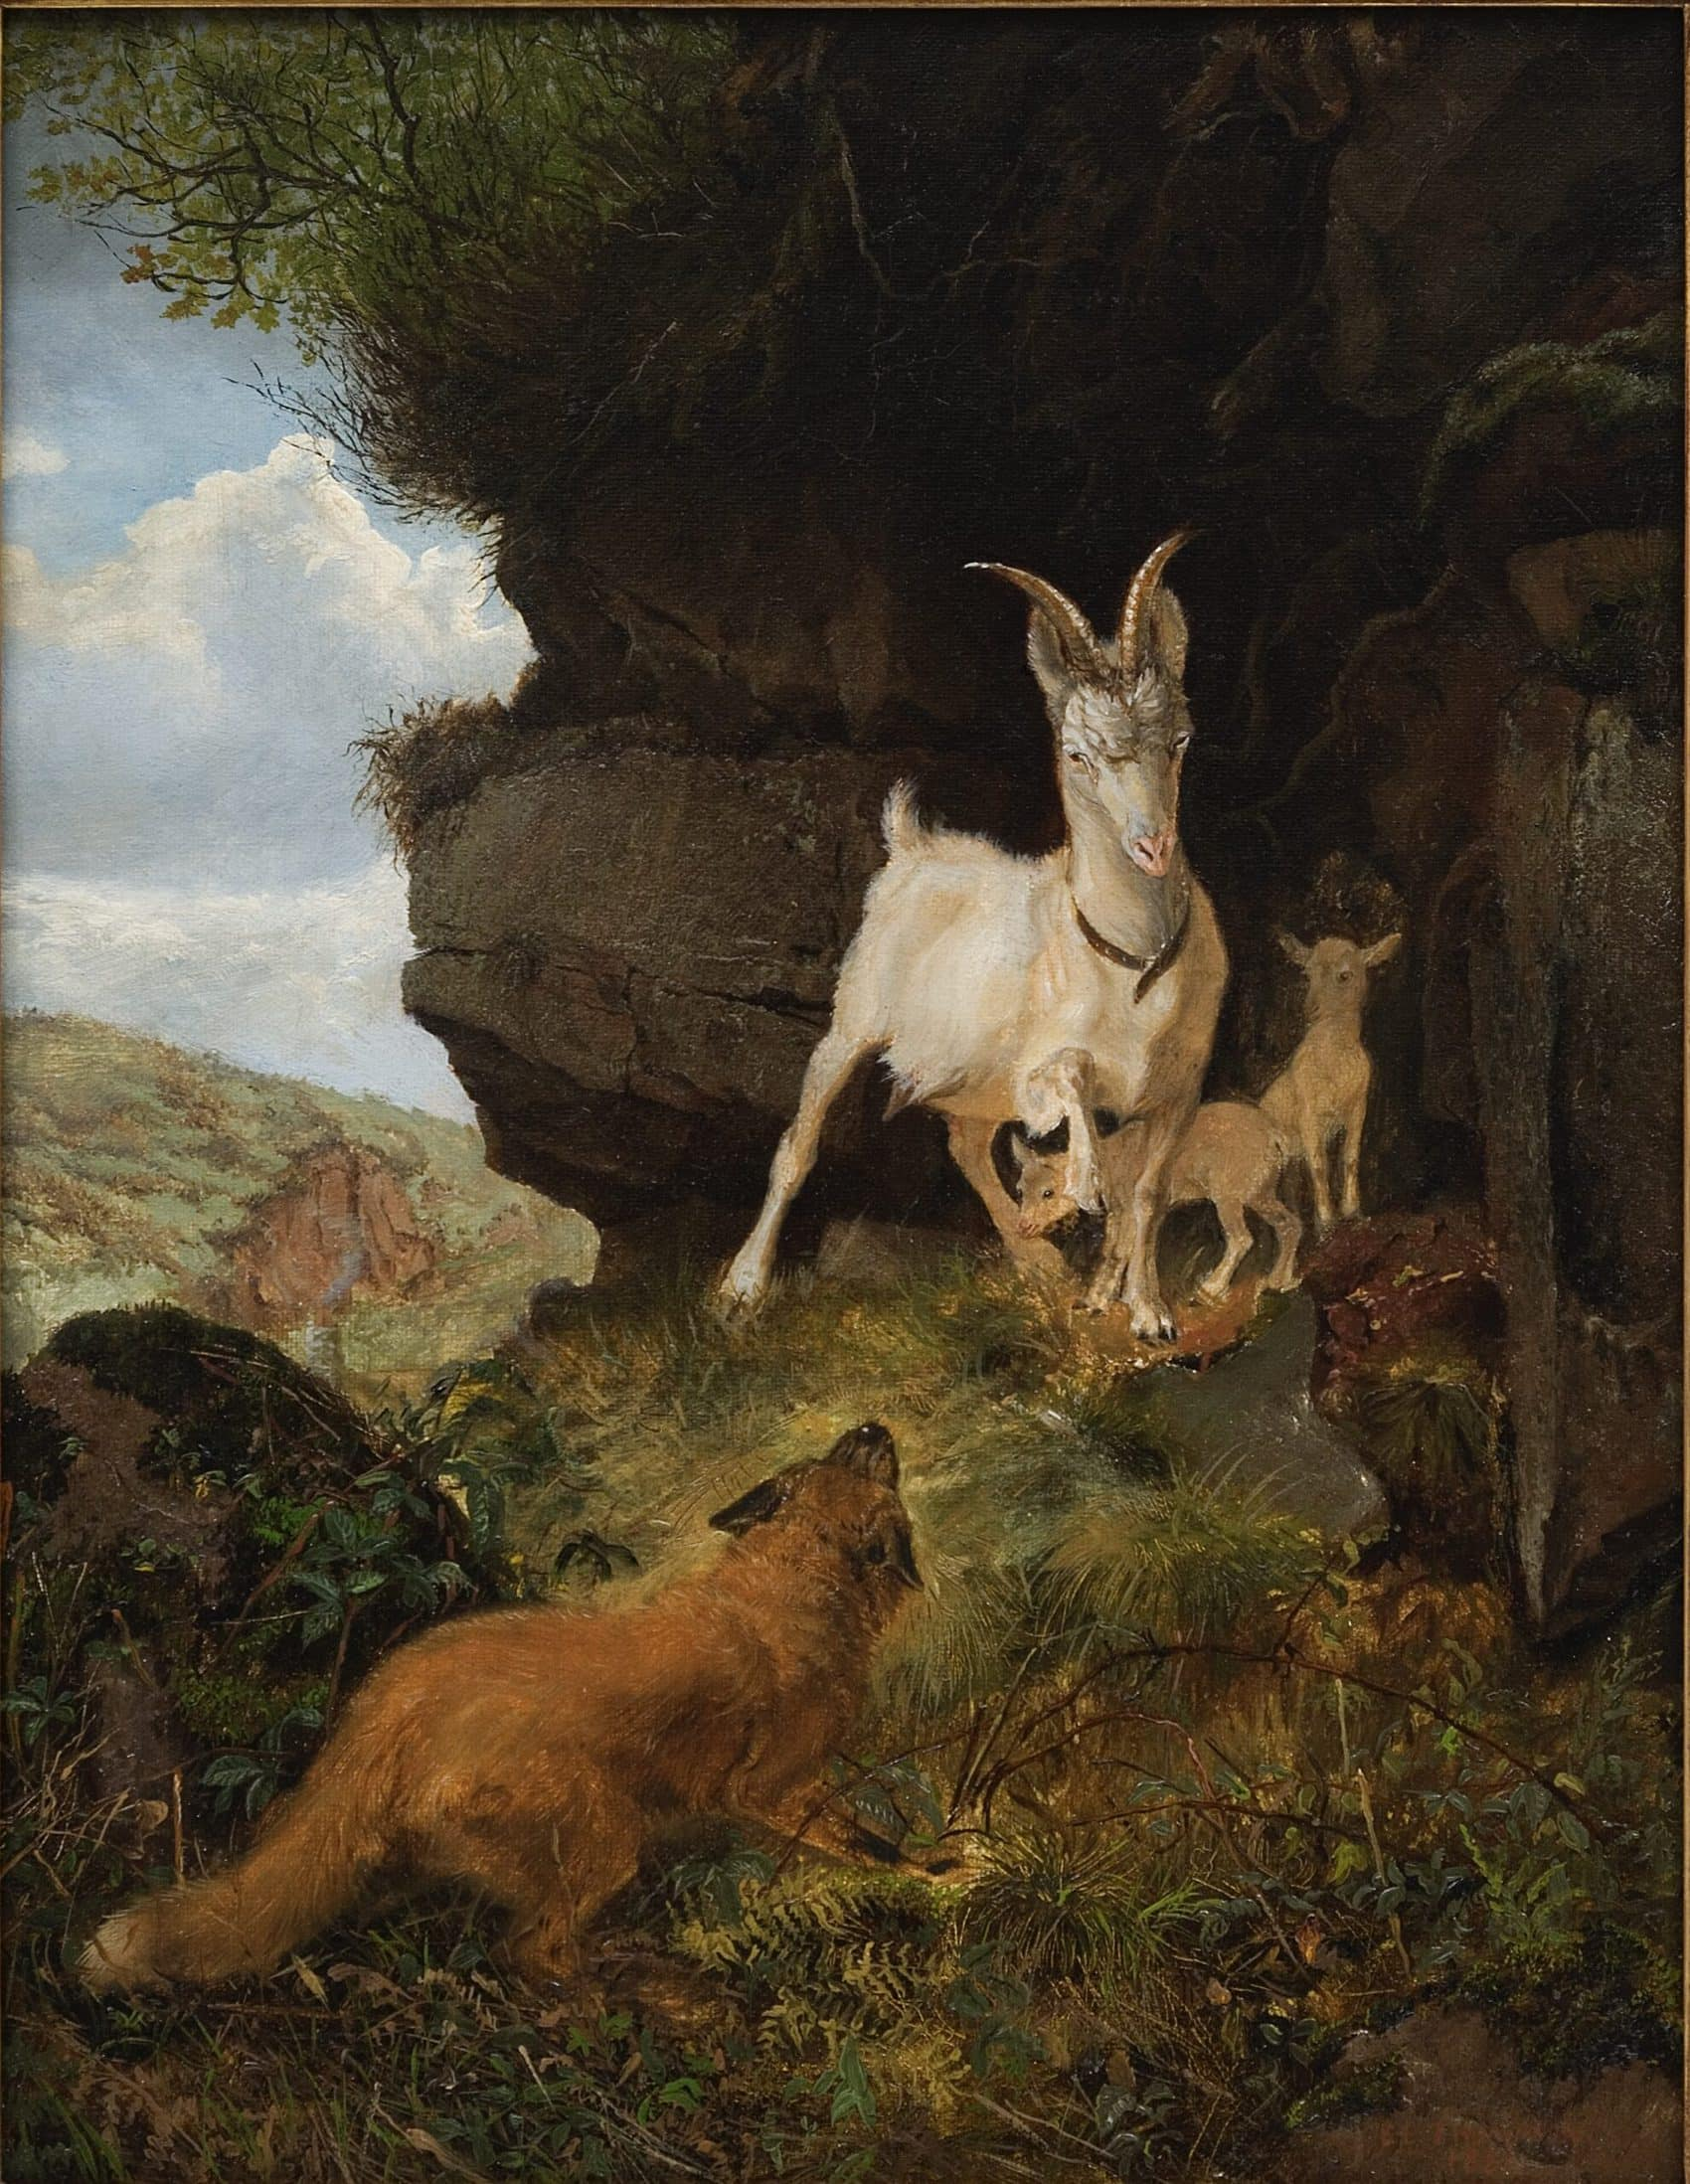 Fox and Goats painting by Ernest Thompson Seton